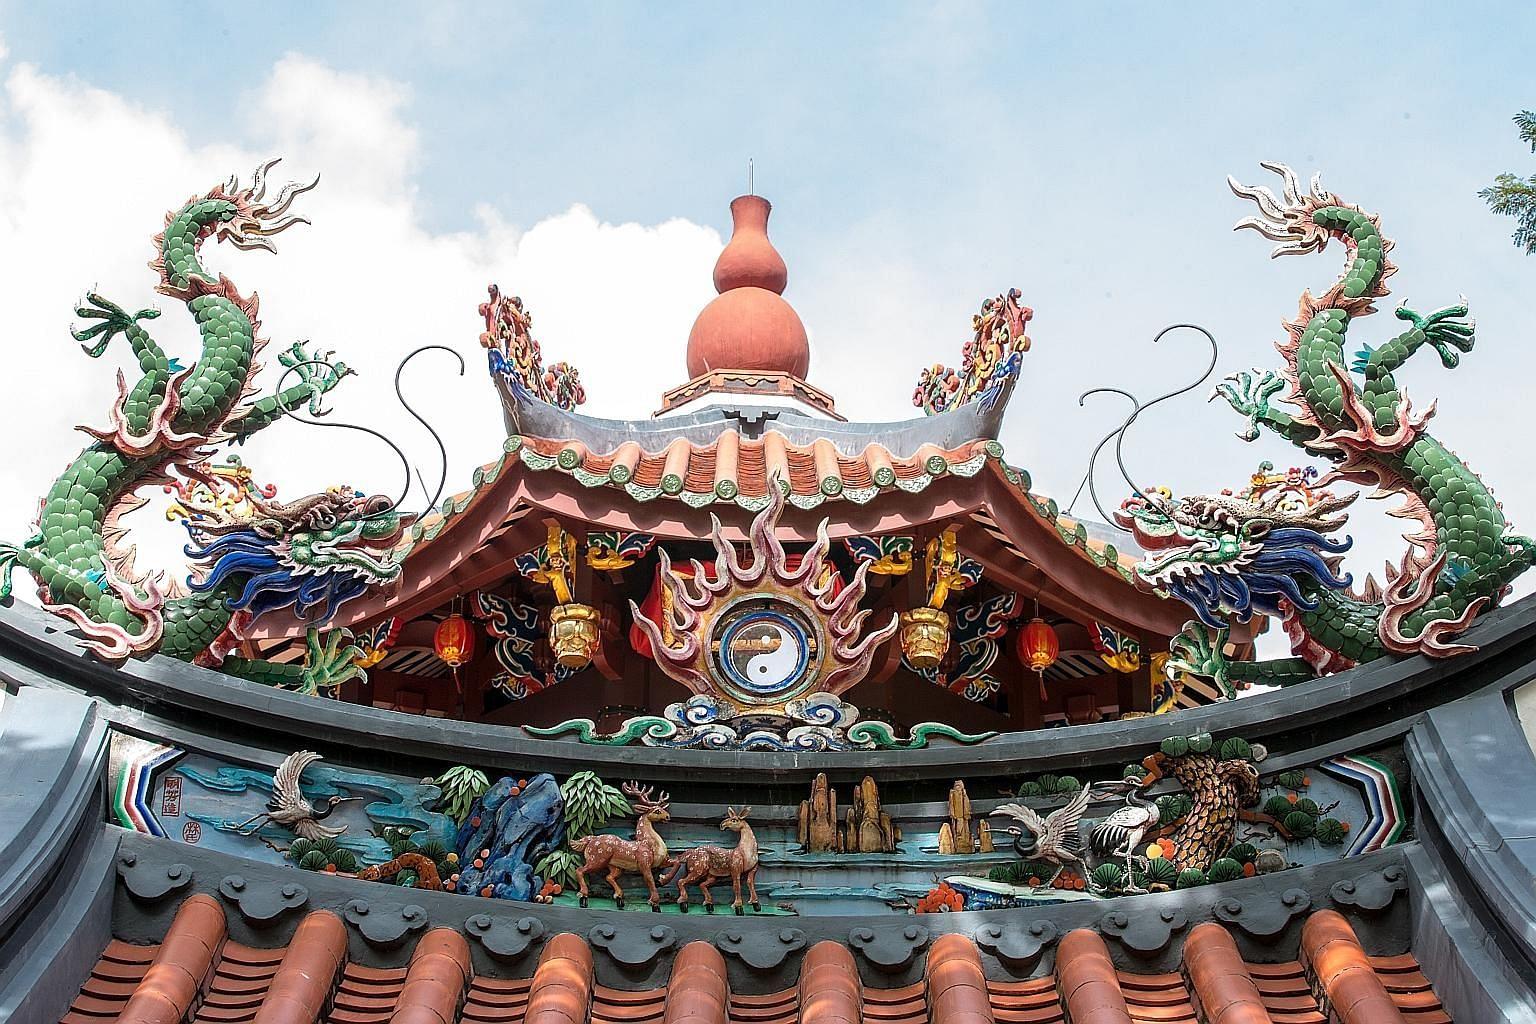 (Above and left) The roof of Singapore Yu Huang Gong, which features ornamental sculptures of dragons, birds and flowers made with the jian nian (cut and paste) technique. (Above) The luxury edition of Heavenly Blessings, which will be launched by Ta